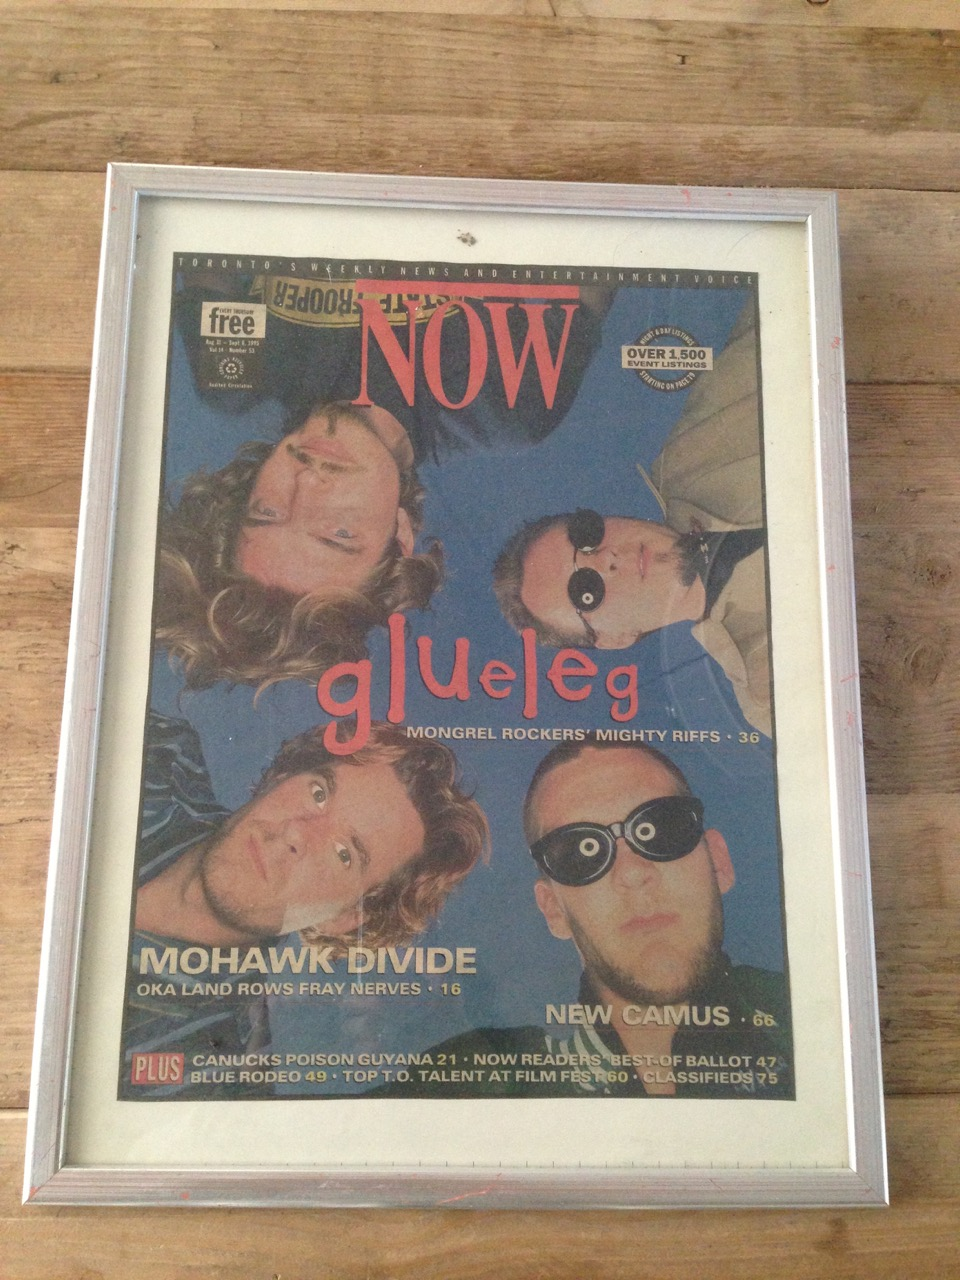 Front cover of NOW magazine for Glueleg's first release and cross Canada tour